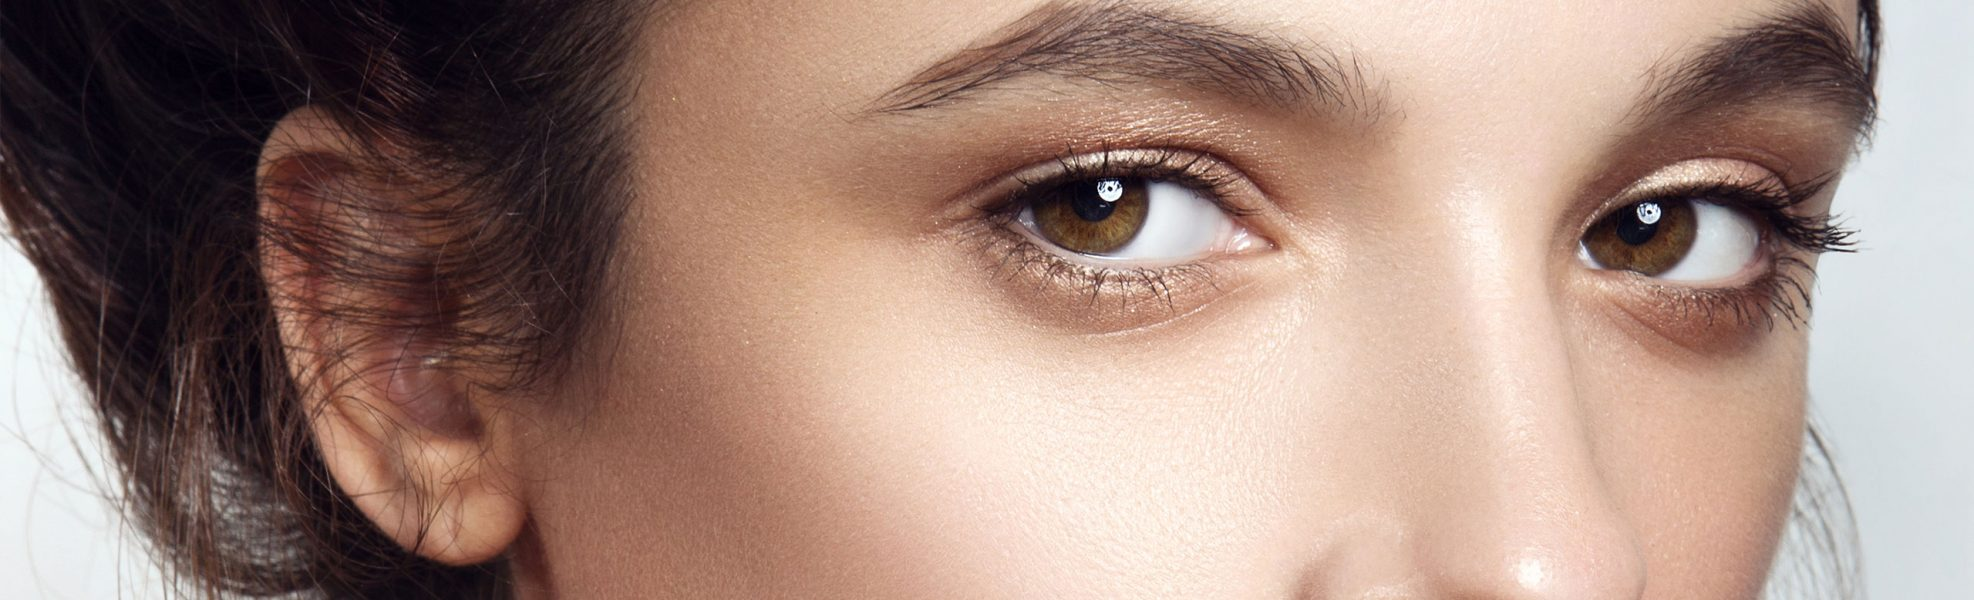 close up on womens eyes